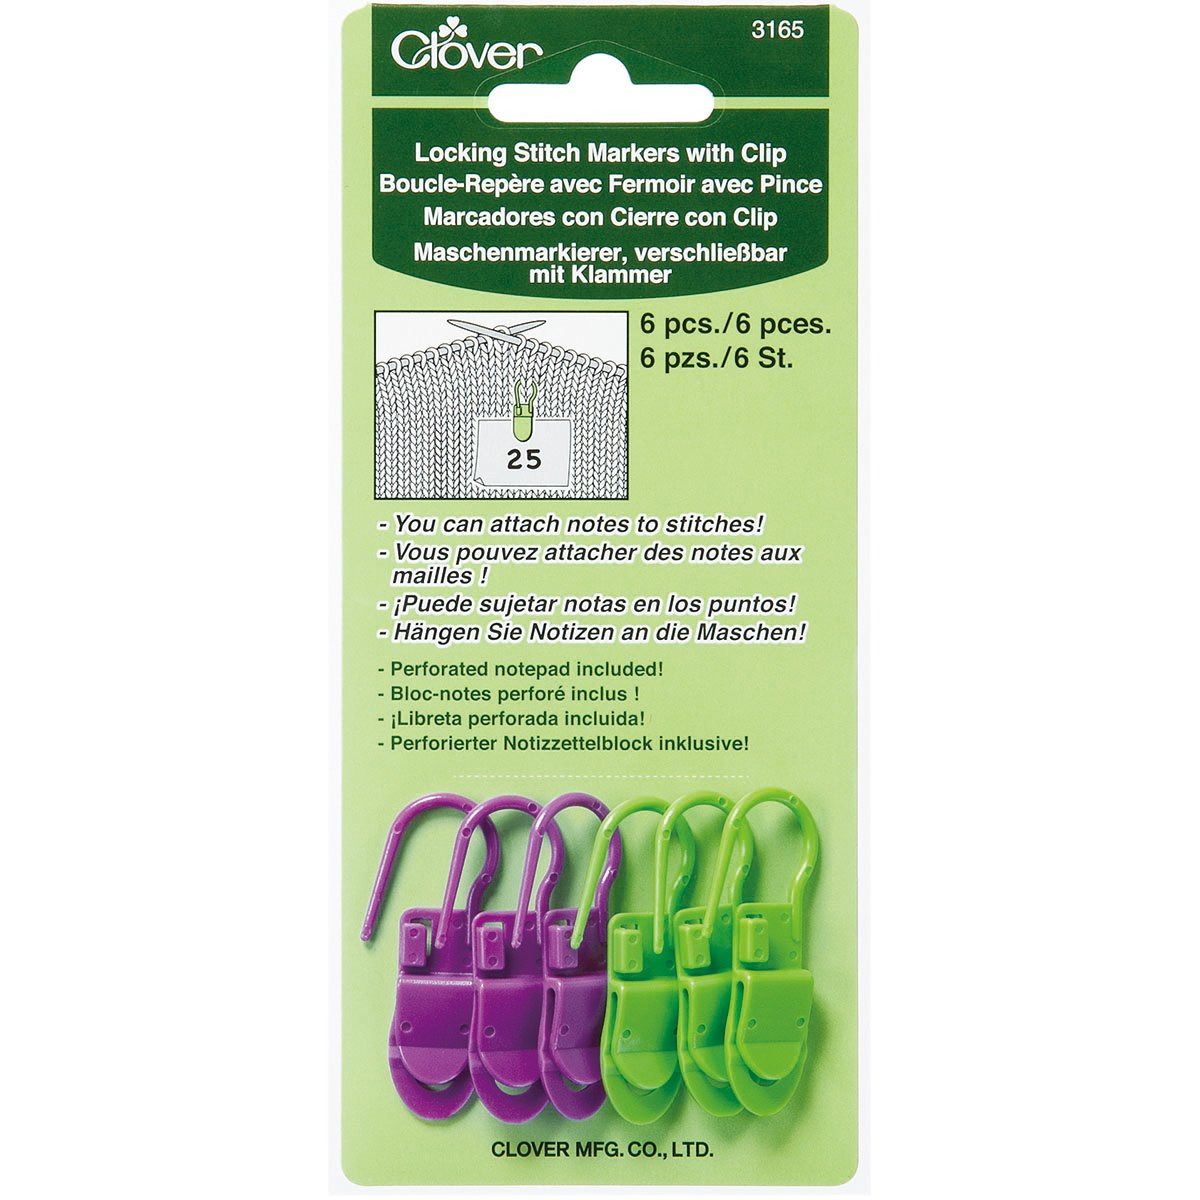 Clover # 3165 Locking Stitch Markers with Clip, 6 Per Package, 3 Green and 3 Purple CLOVER MFG. CO. LTD.